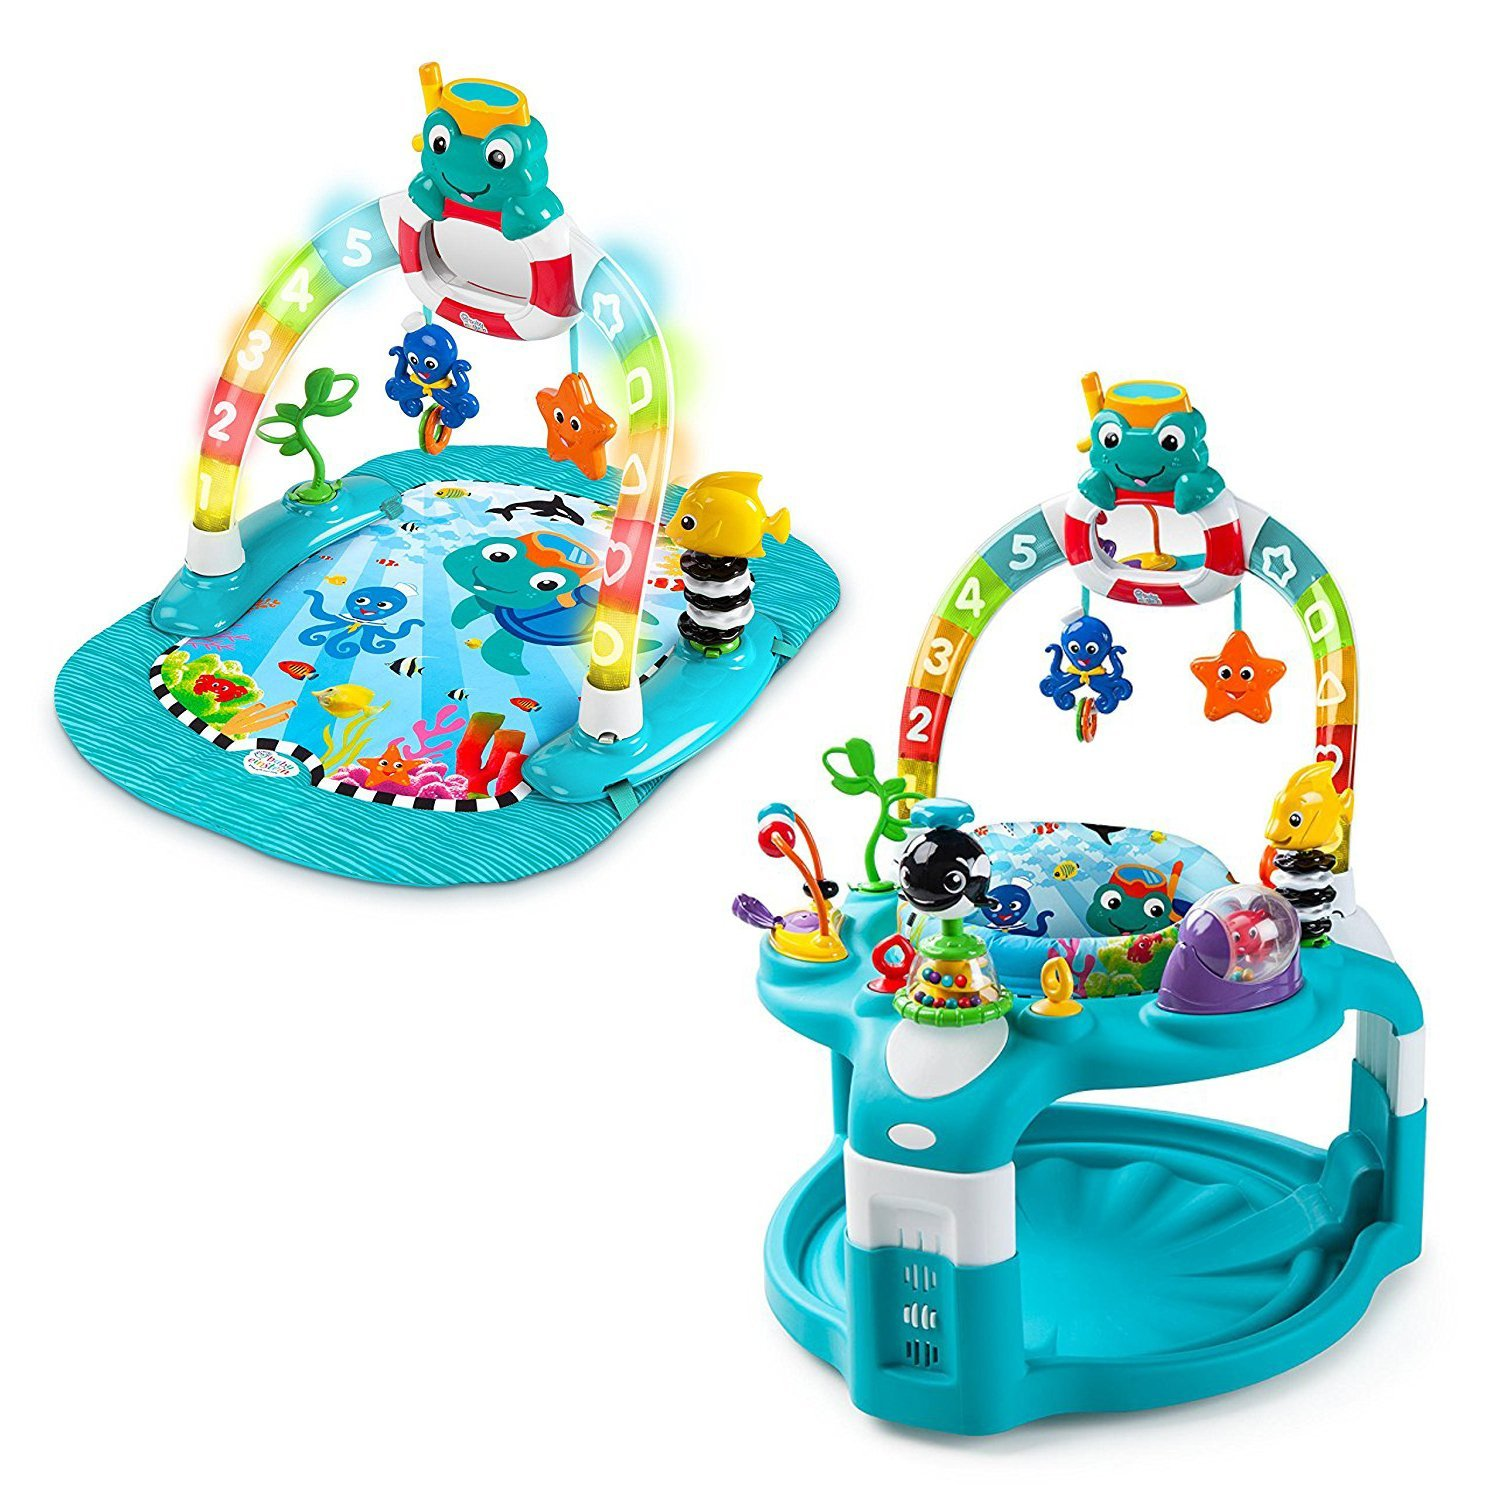 Exersaucer for Baby - Baby Einstein 2-in-1 Lights & Sea Activity Gym & Saucer